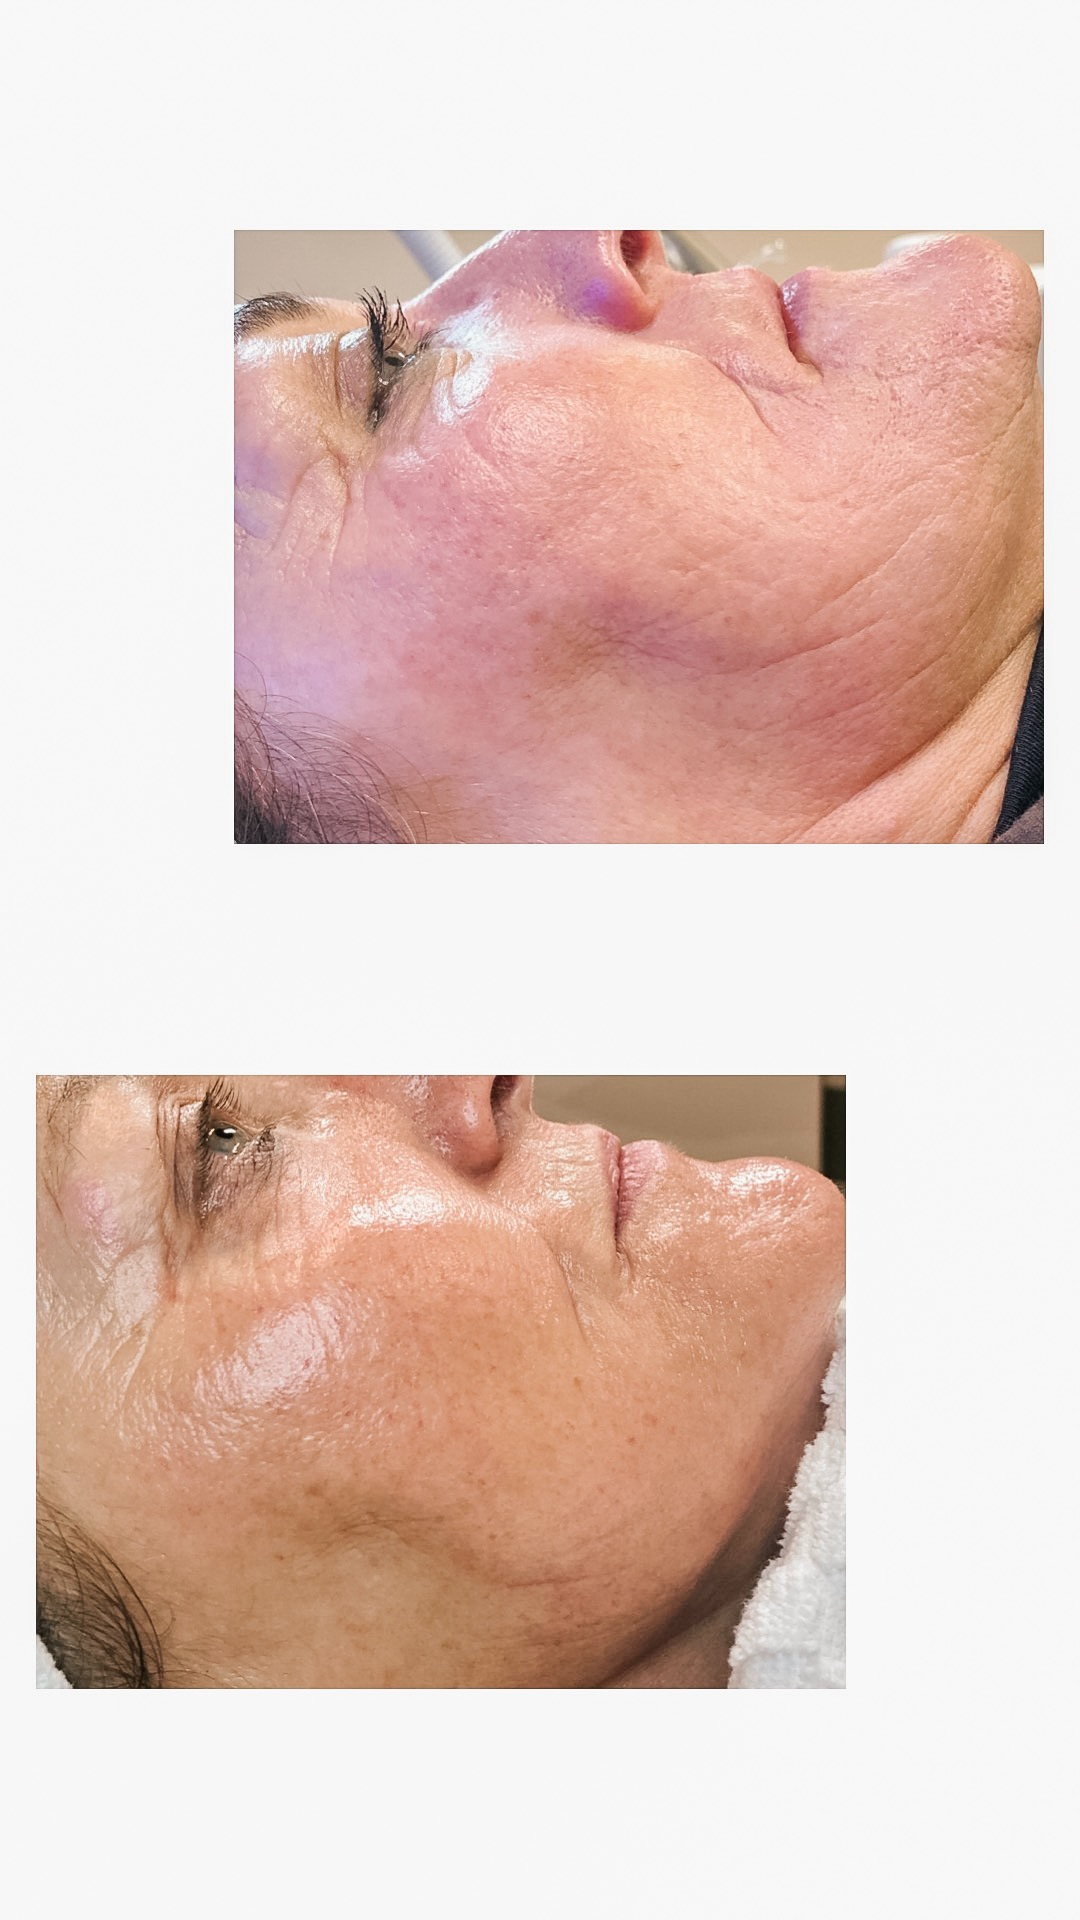 Microneedling - Collagen Induction Therapy  Before and After 4 sessions of micro needling with Connective Tissue Growth Factor serums